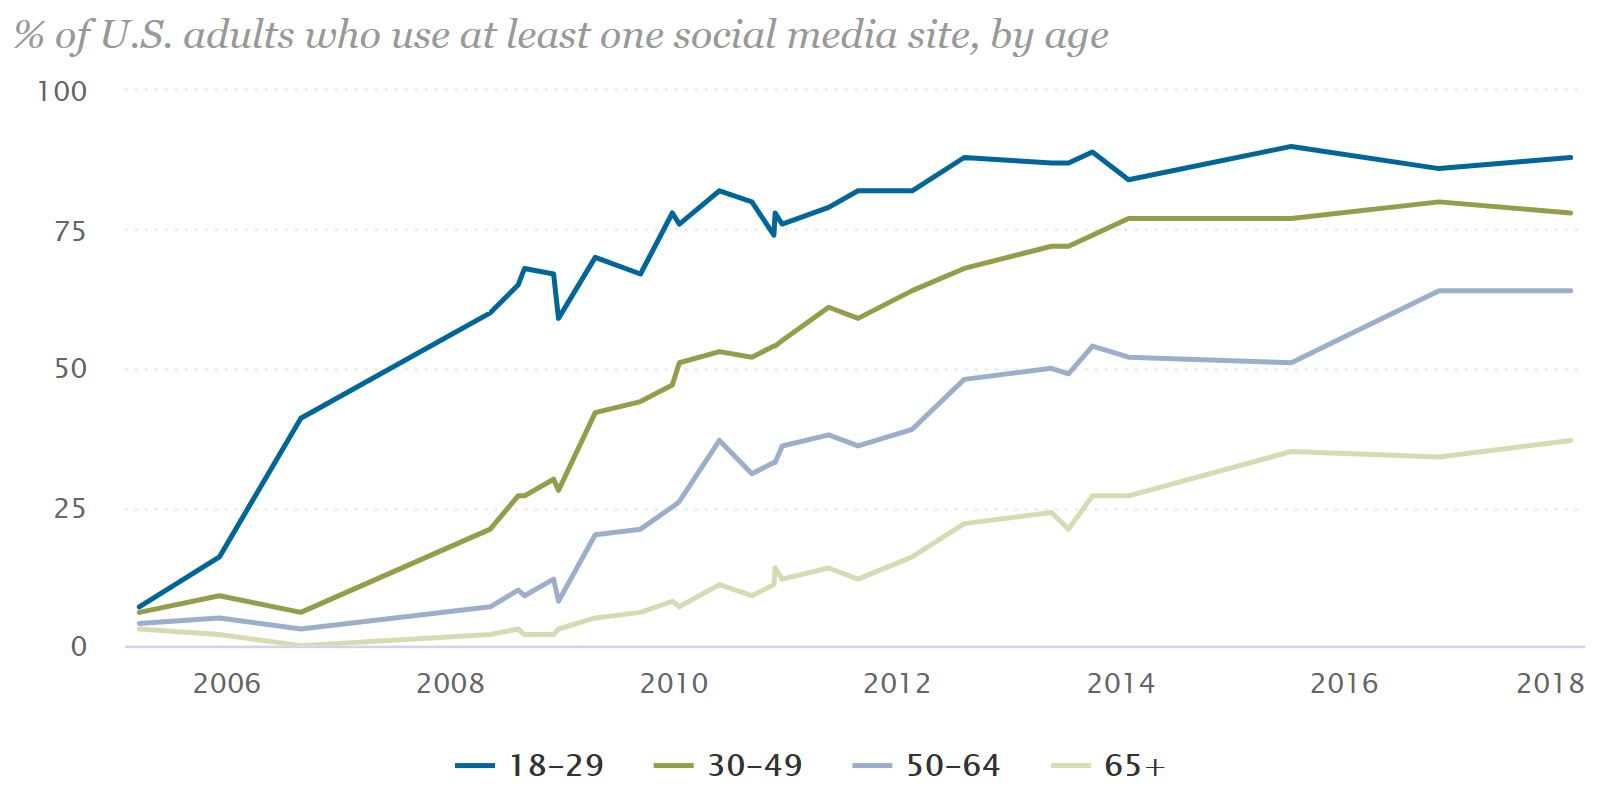 Rise in Social Media Use by Age Groups